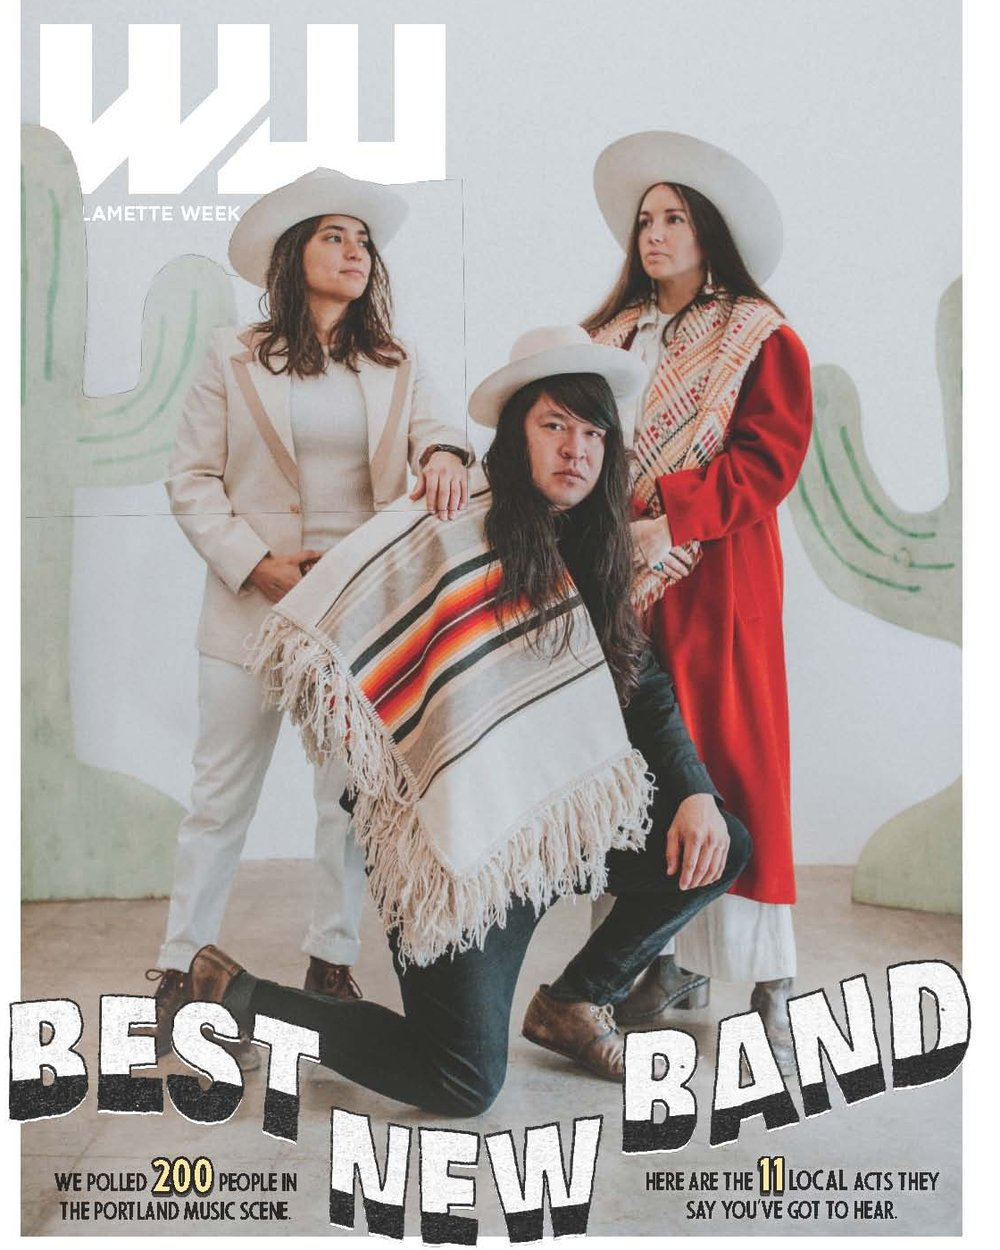 BEST NEW BAND - We poll the pros in the local music business for a list of the best up-and-coming bands of 2019.